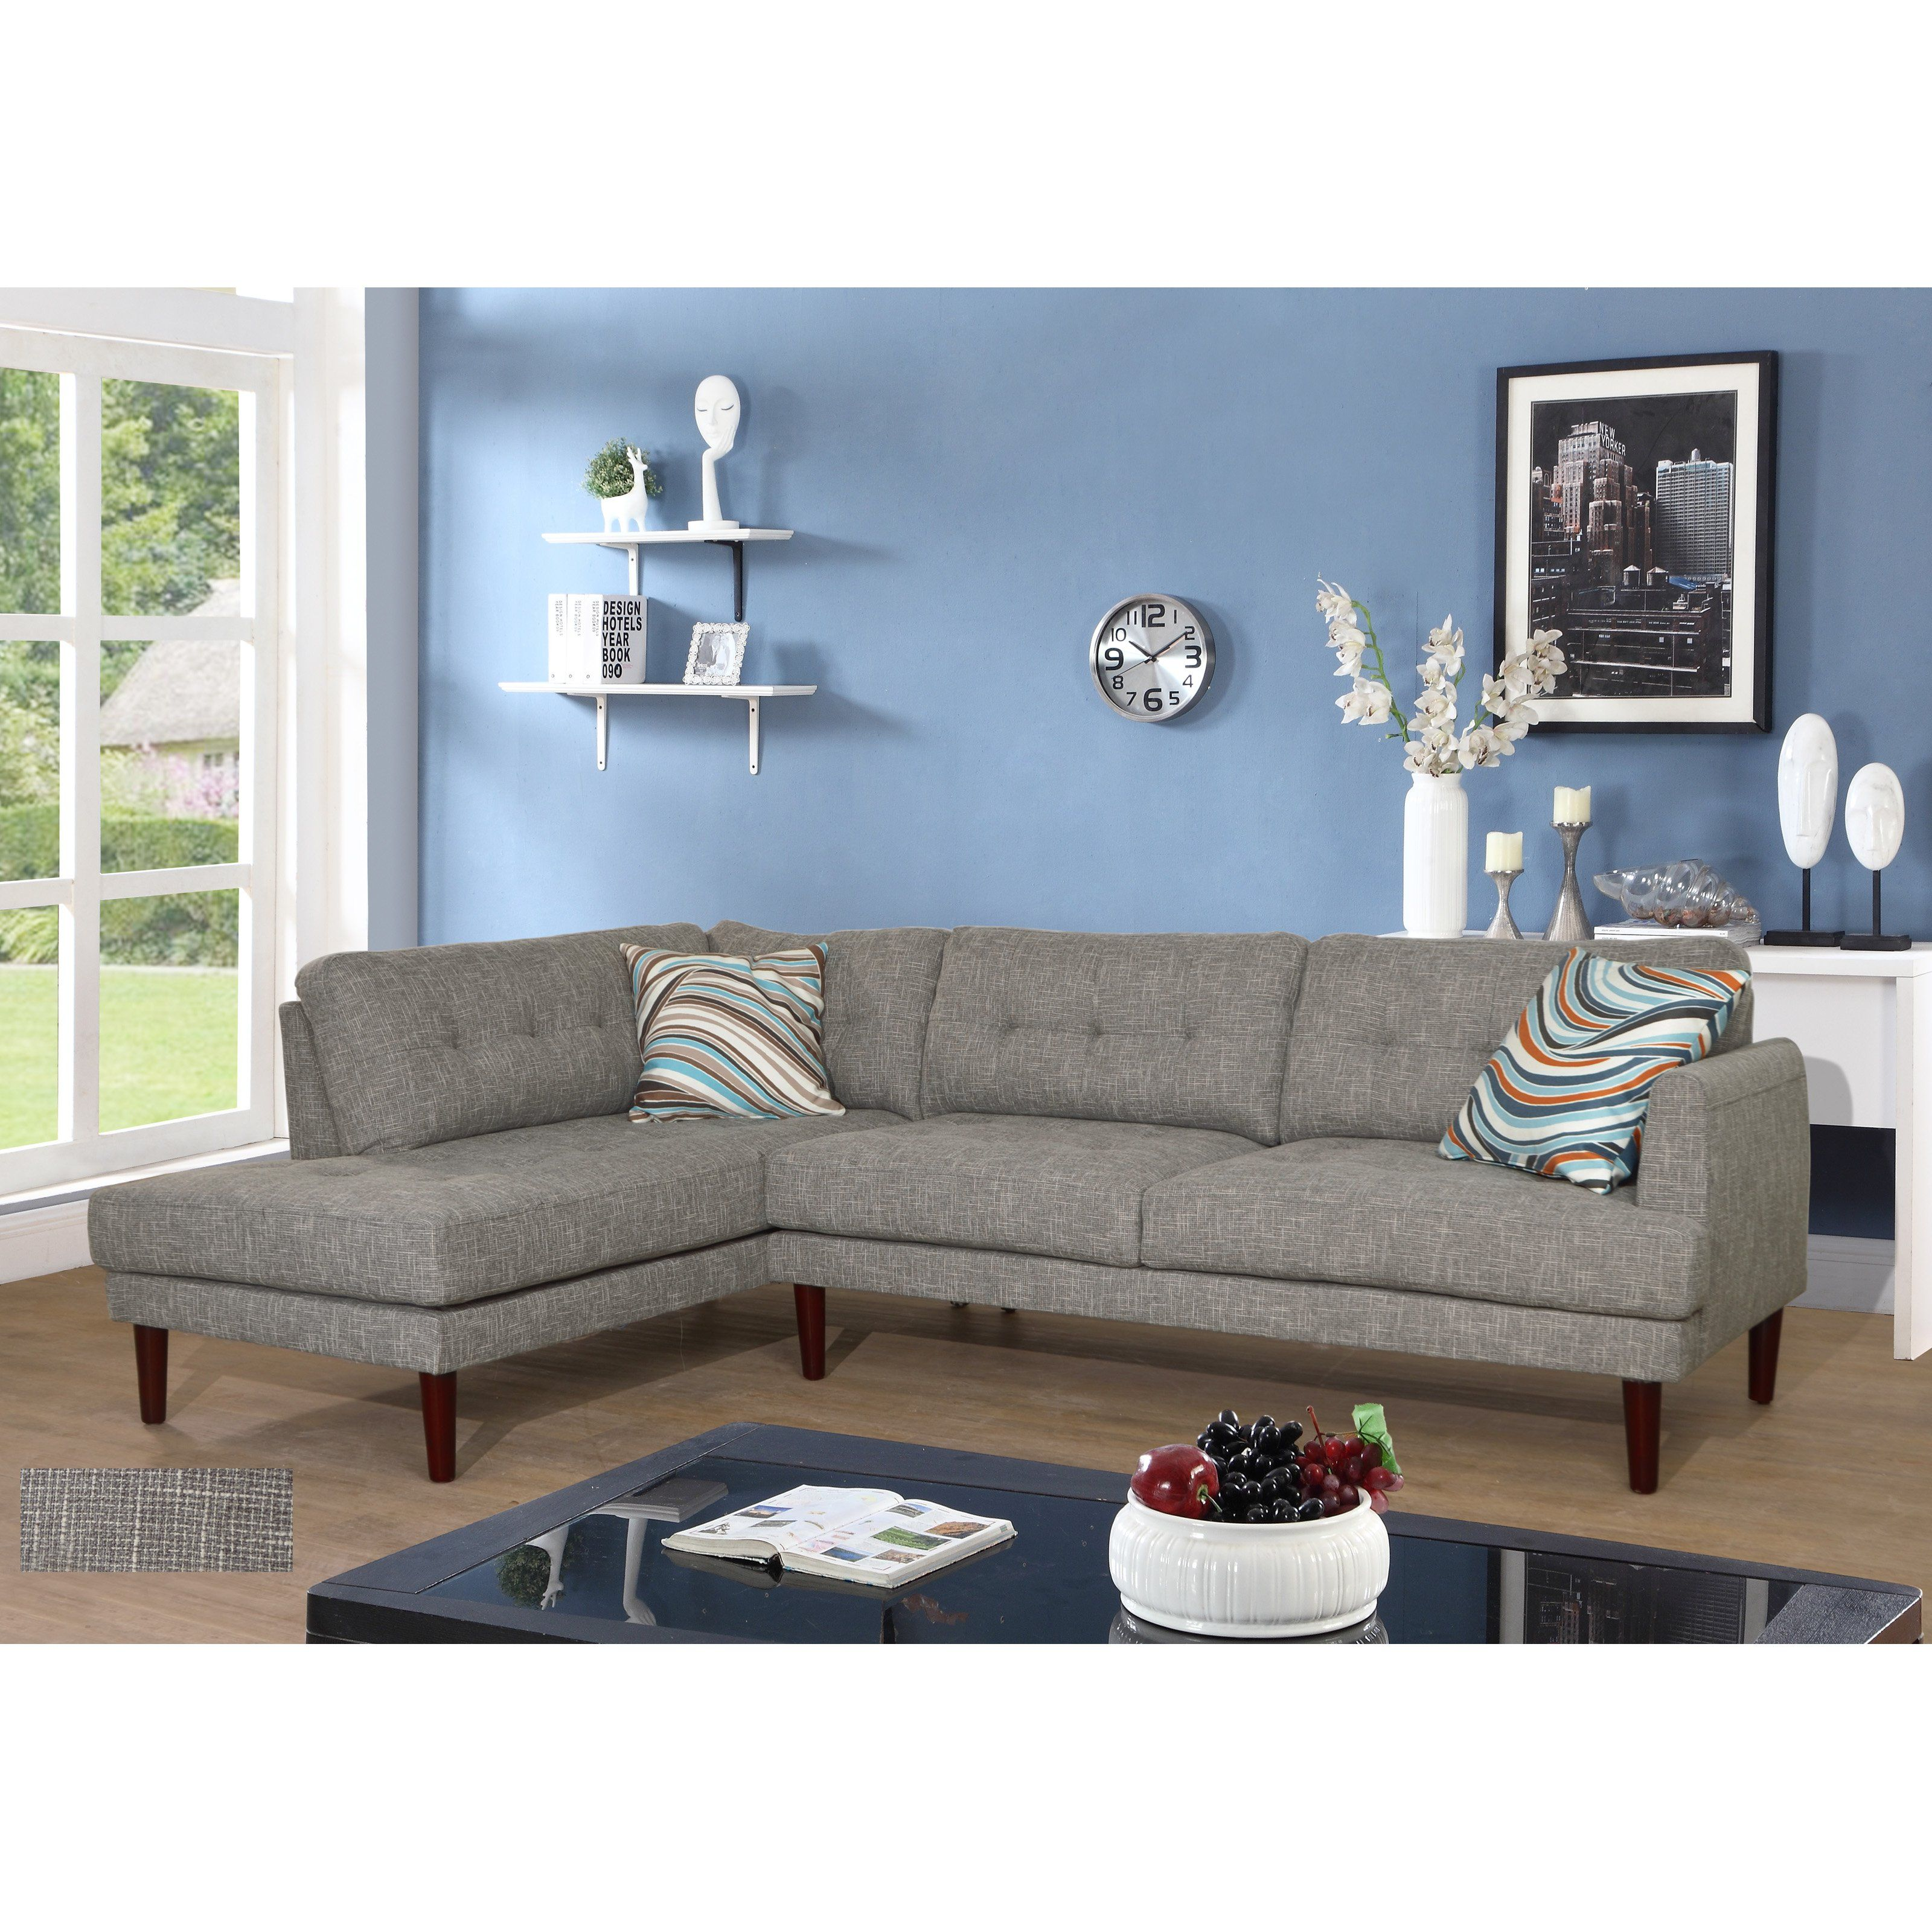 Beverly Fine Furniture Linen Sectional Sofa From Hayneedle Com  # Muebles Juramento Y Libertador